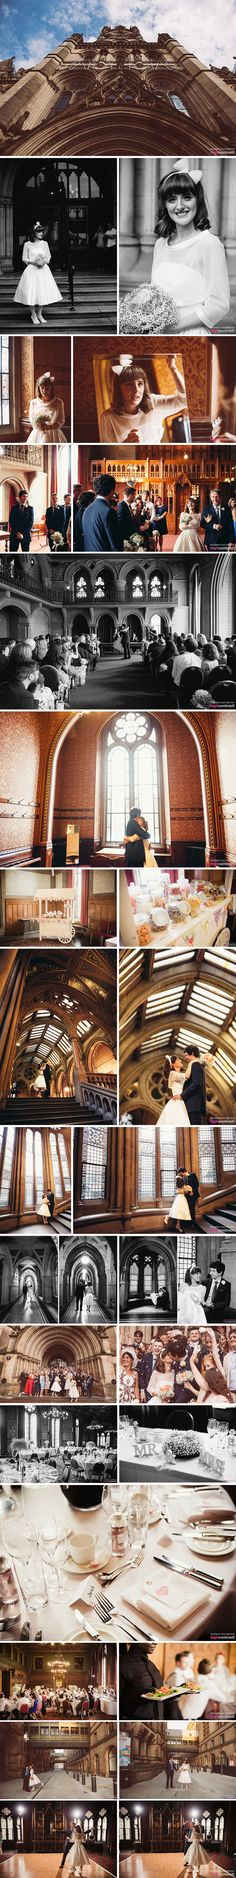 Manchester Town Hall, Manchester - Wedding Day Photos #TownHall #Manchester #Wedding #couple #married #gardens #flowers #WDP #venue #WeddingVenue #inspiration #Ideas #bridal #portrait #bride #groom #rings #TableSetting #ceremony #stairs #hall #nighttime #lights #fairylights #arches #confetti #FirstDance #candy #sweets